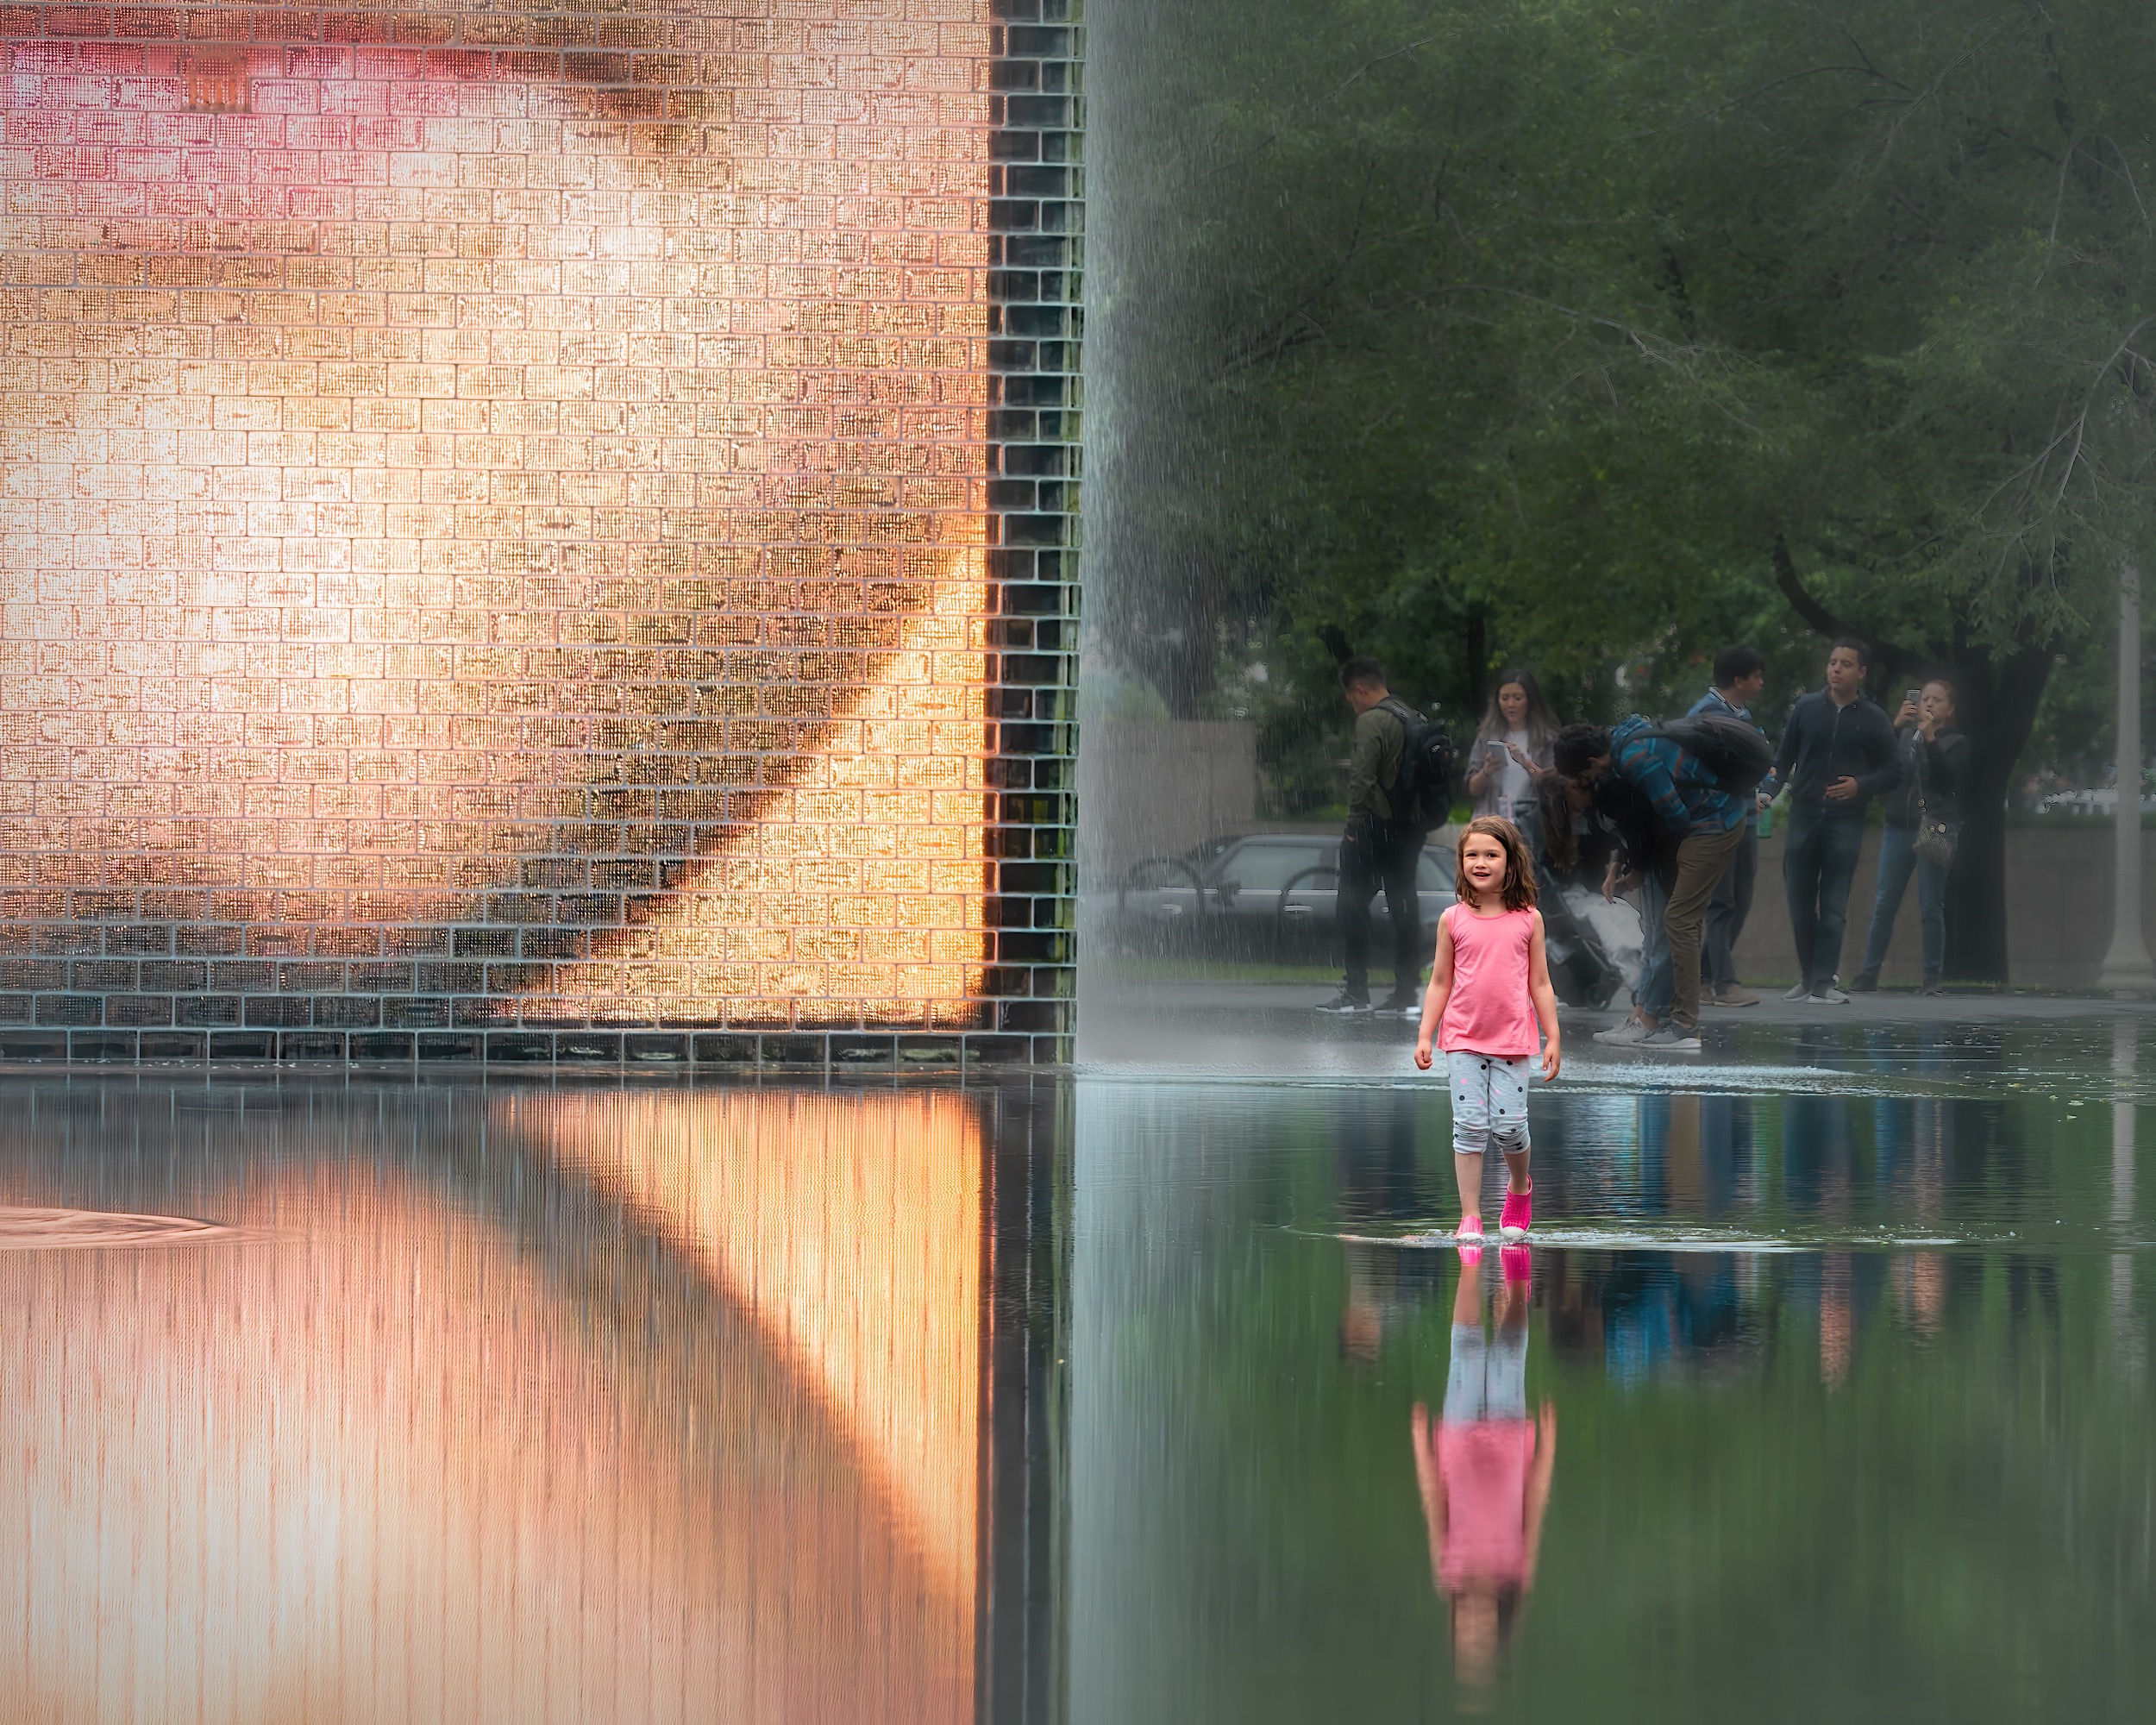 Crown Fountain in Chicago. Photo by Linda Buchanan. Used with permission. Linda is a street photographer with a particular passion for shooting in Chicago. You can see her galleries on Instagram at @lindab.moments and @lindab.places. Click for a larger image.